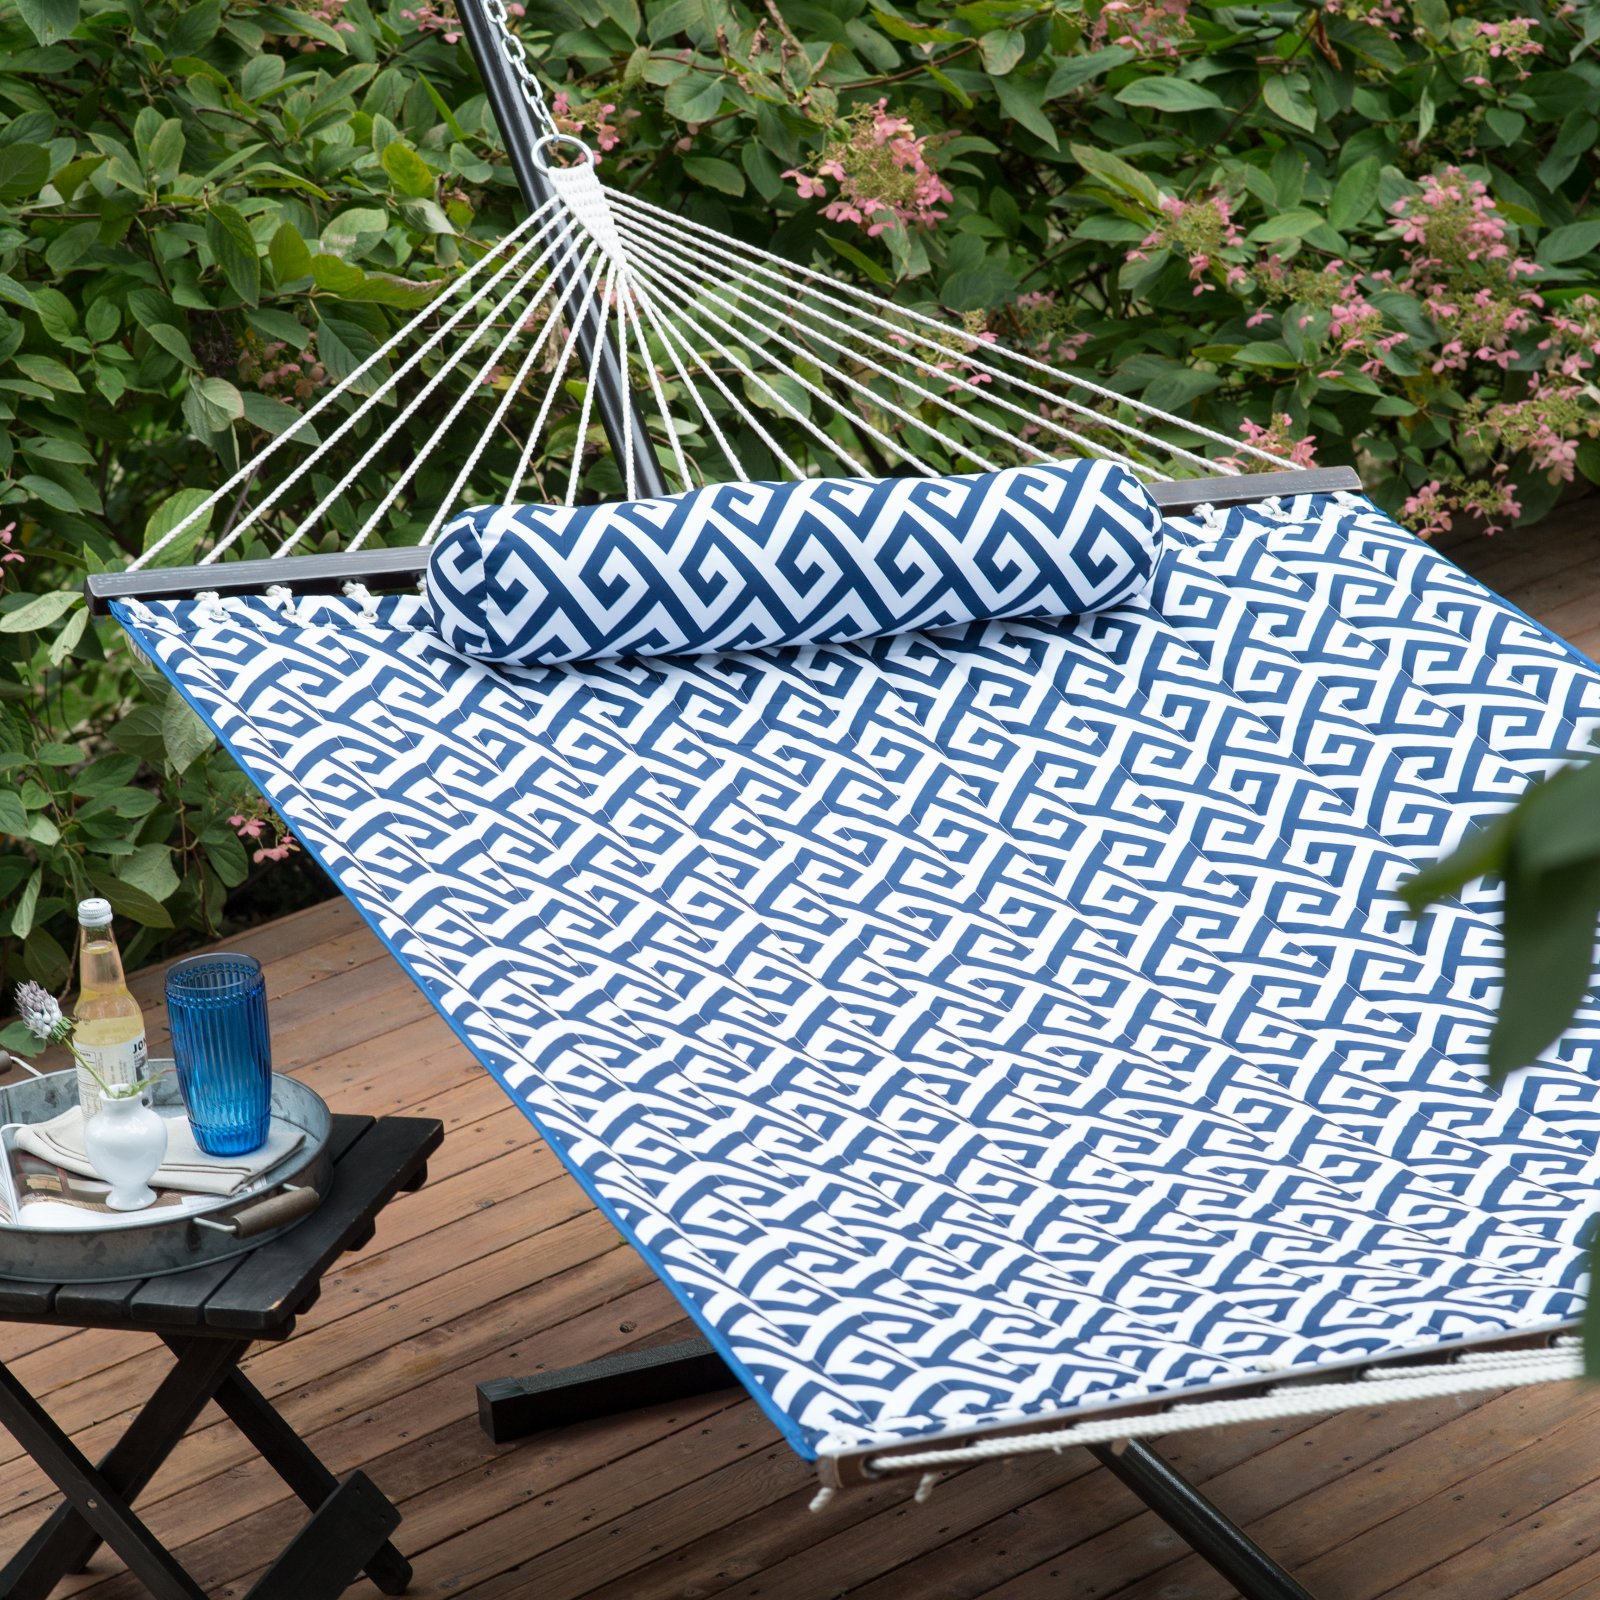 Island Bay 11-ft. Greek Key Quilted Hammock with Metal Stand Deluxe Set